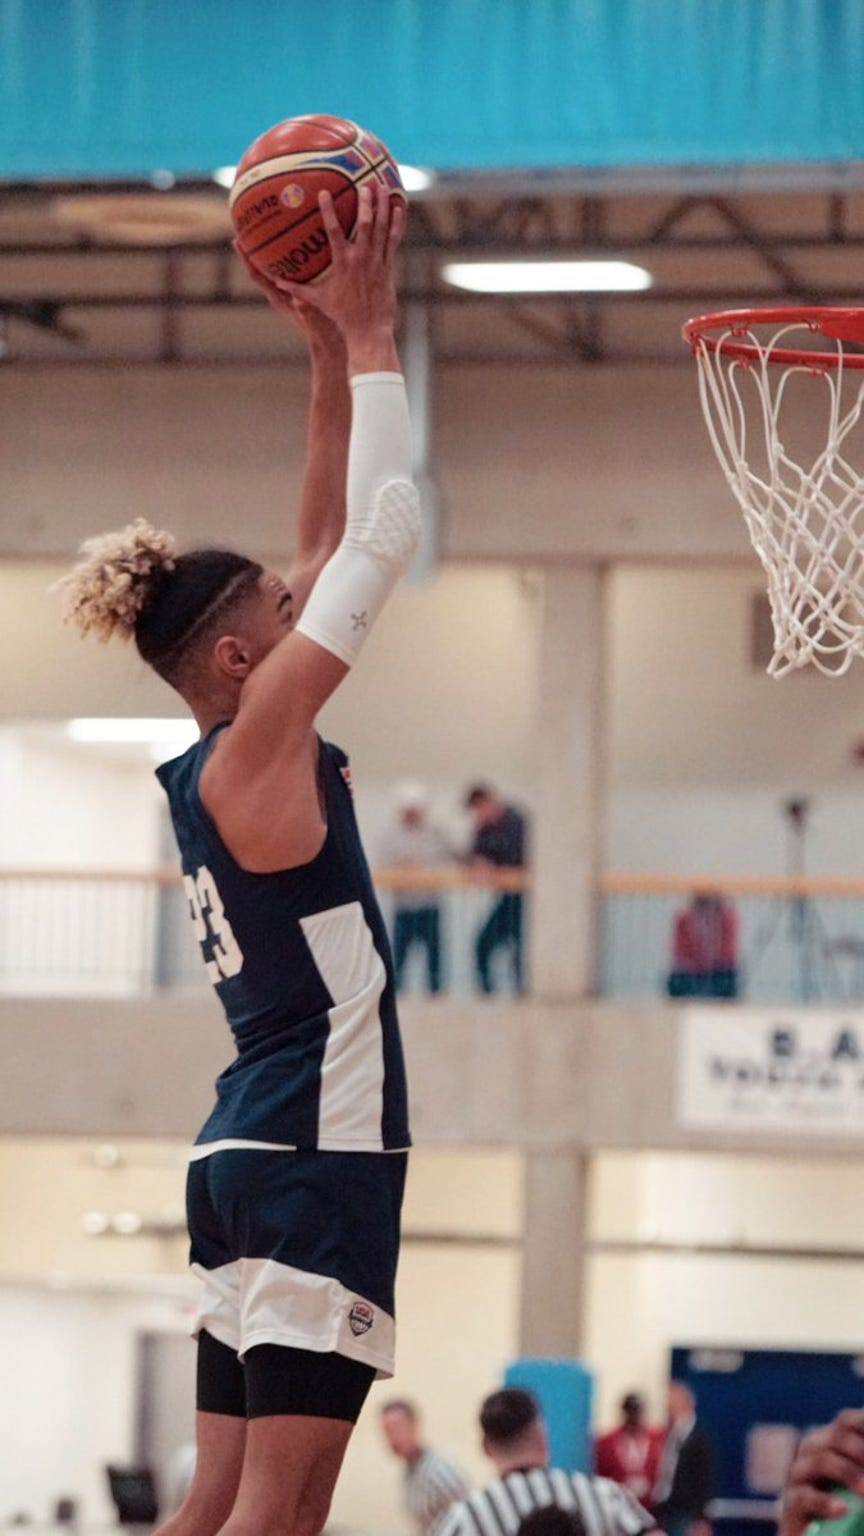 Khristian Lander recently attended the USA Men's Basketball Junior National Team Training Camp.